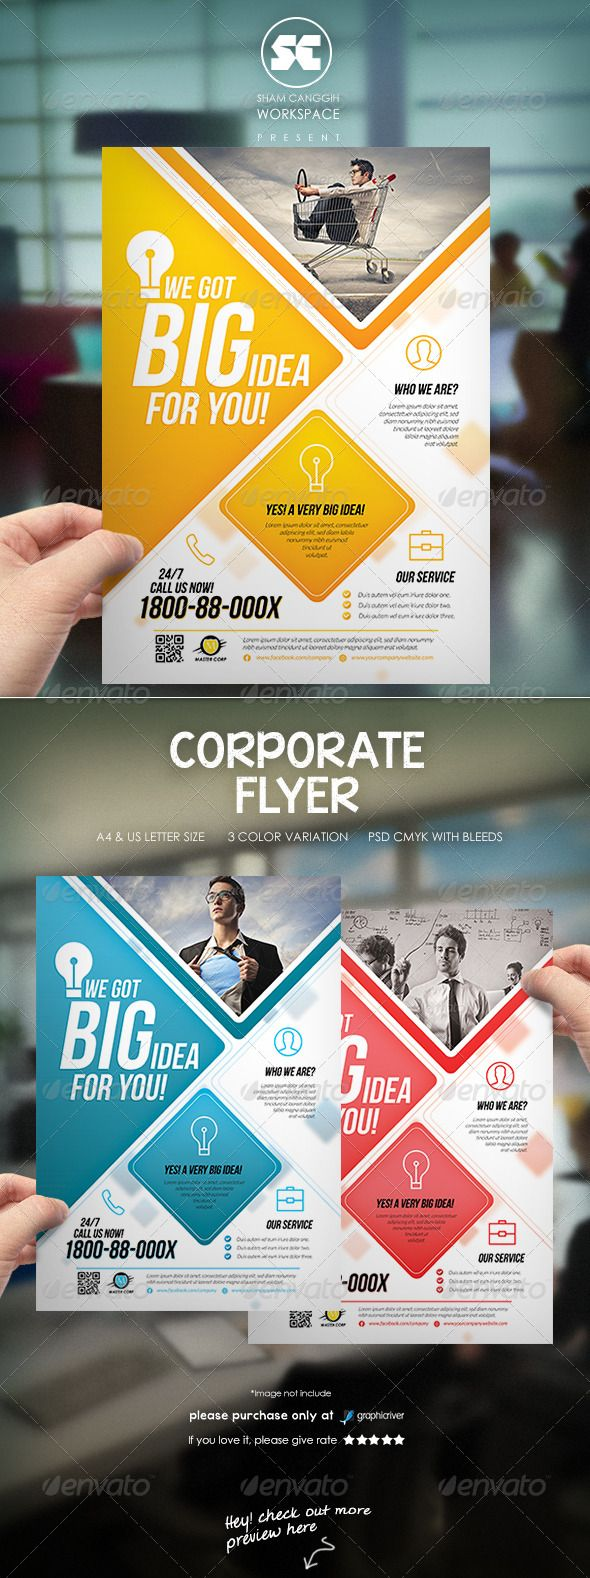 flyer magazine ads magazine ads flyer template brochures flyers